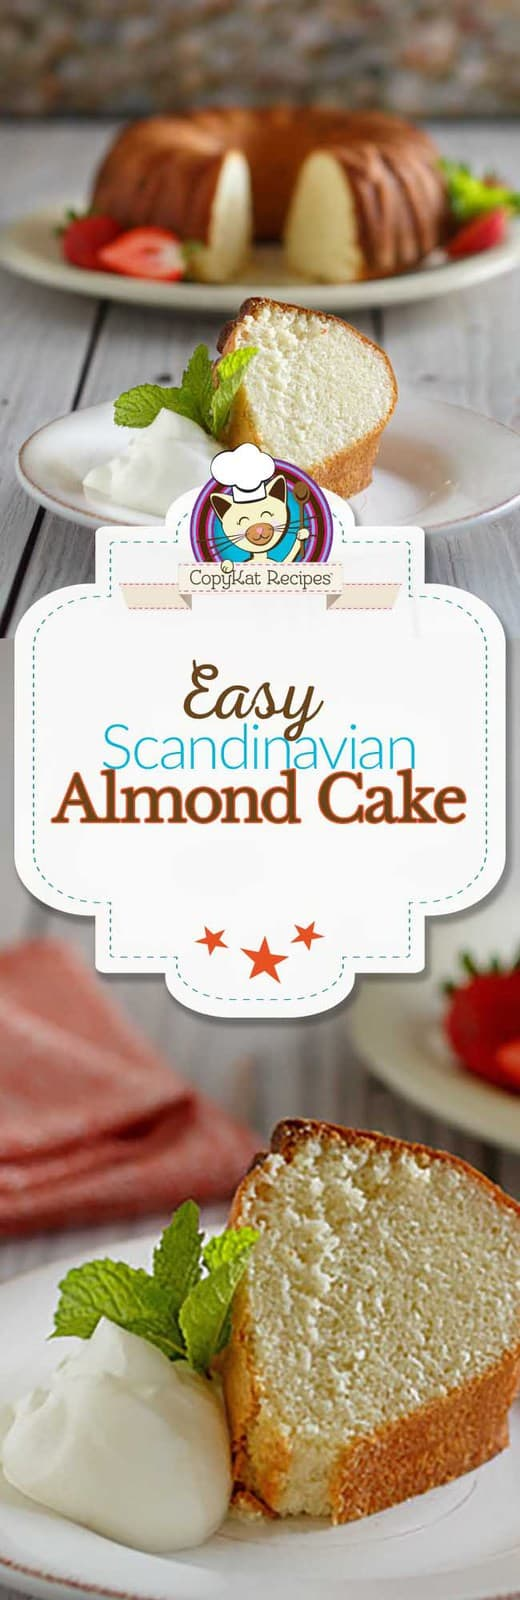 You are going to love this easy to prepare Scandinavian Almond cake.  You can make a delicious cake from scratch. #homemade #cake #almond #recipe #desserts #christmas